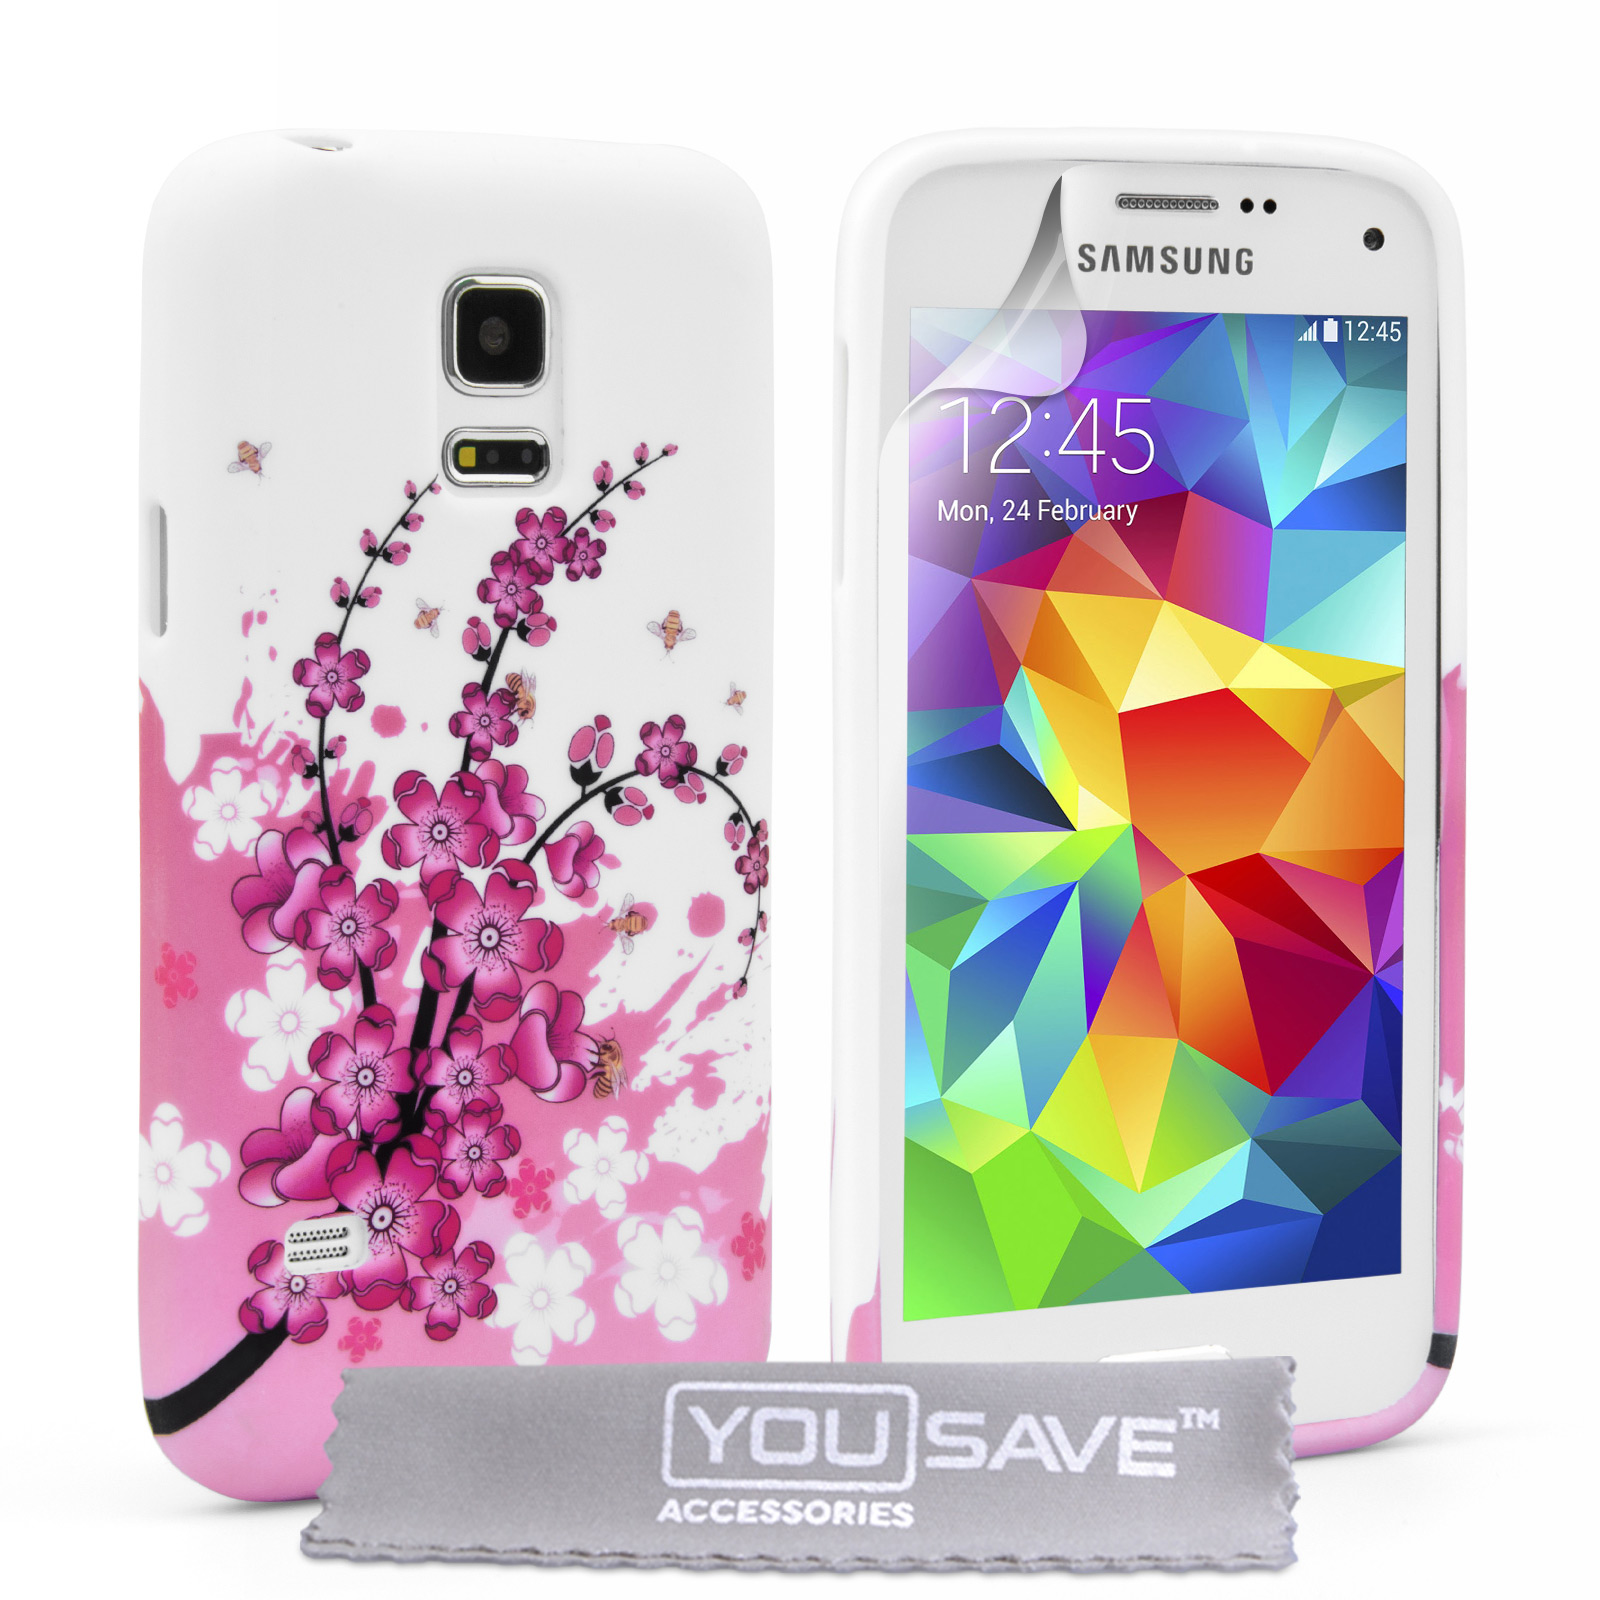 YouSave Samsung Galaxy S5 Mini Floral Bee Silicone Gel Case